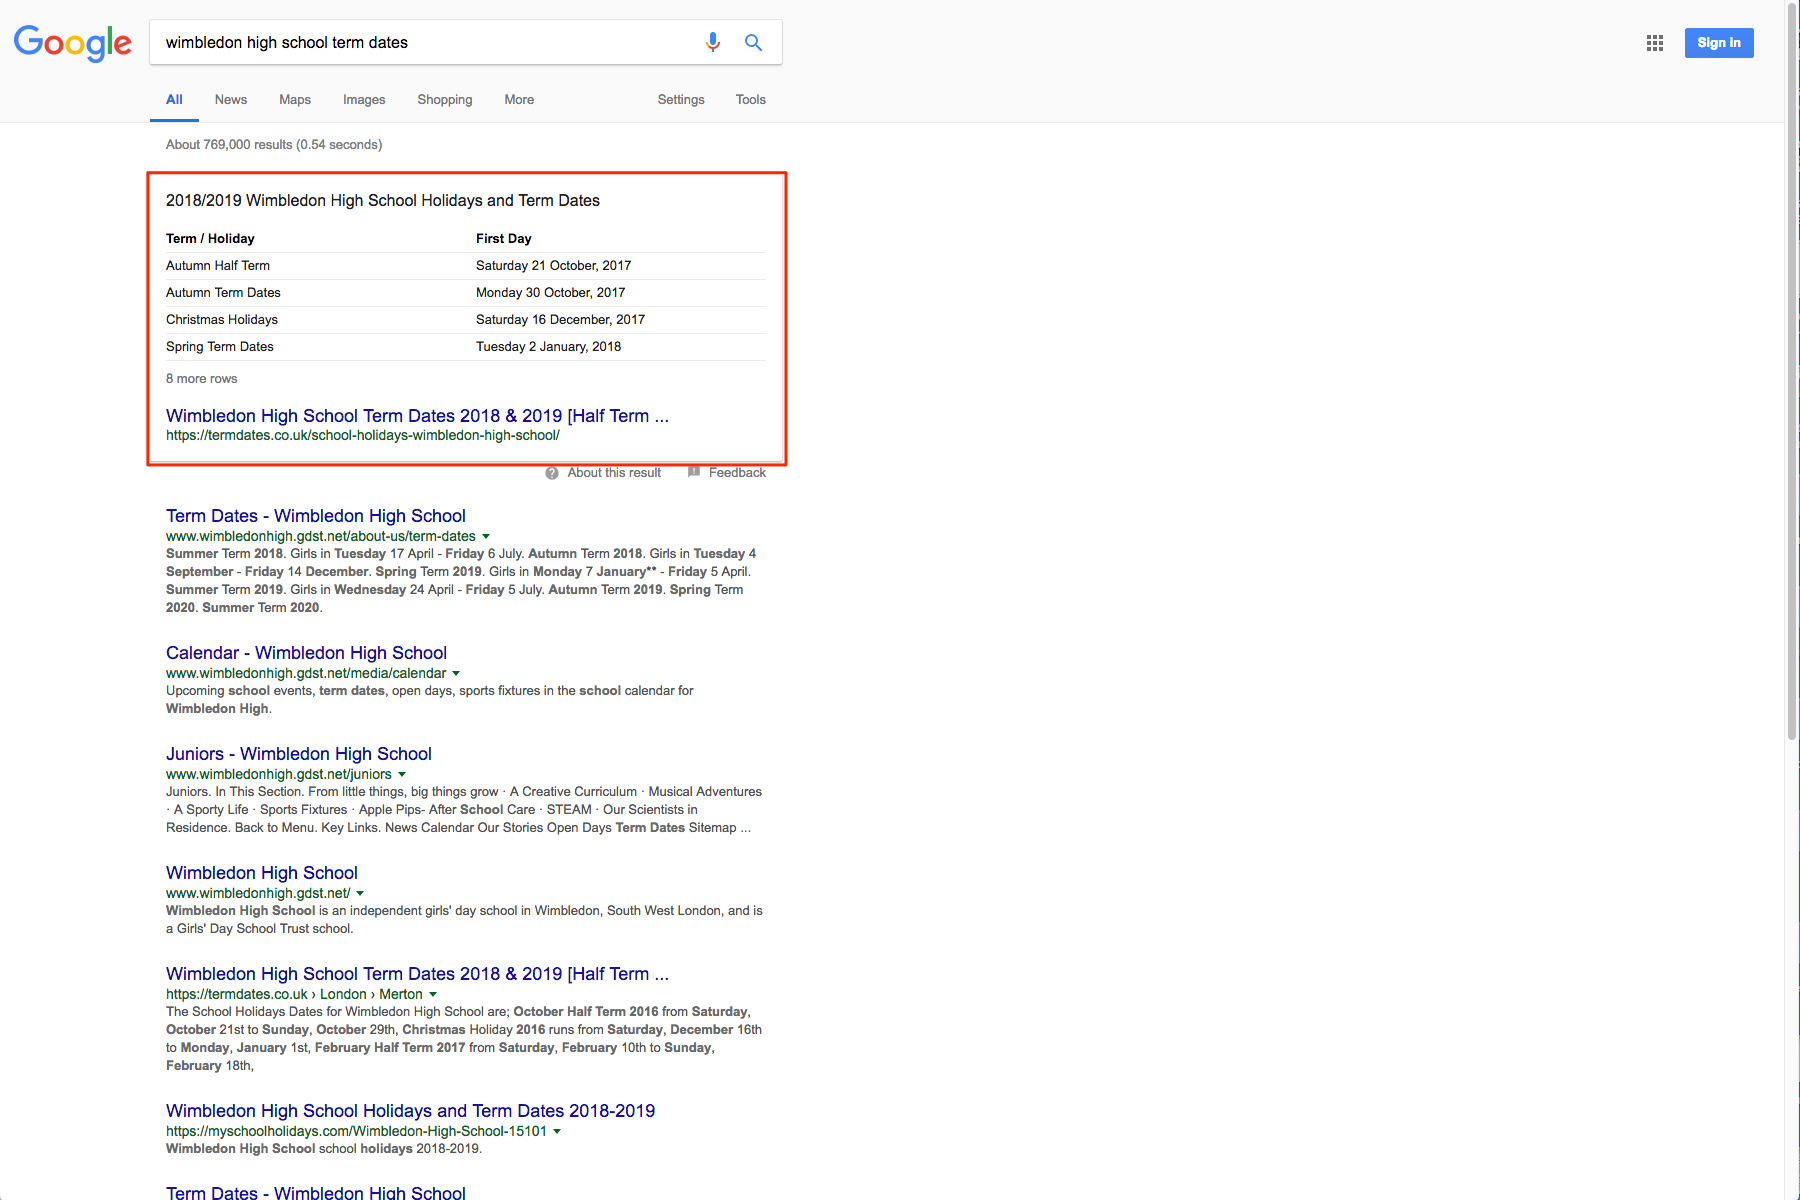 WHS-Featured-Snippet.png